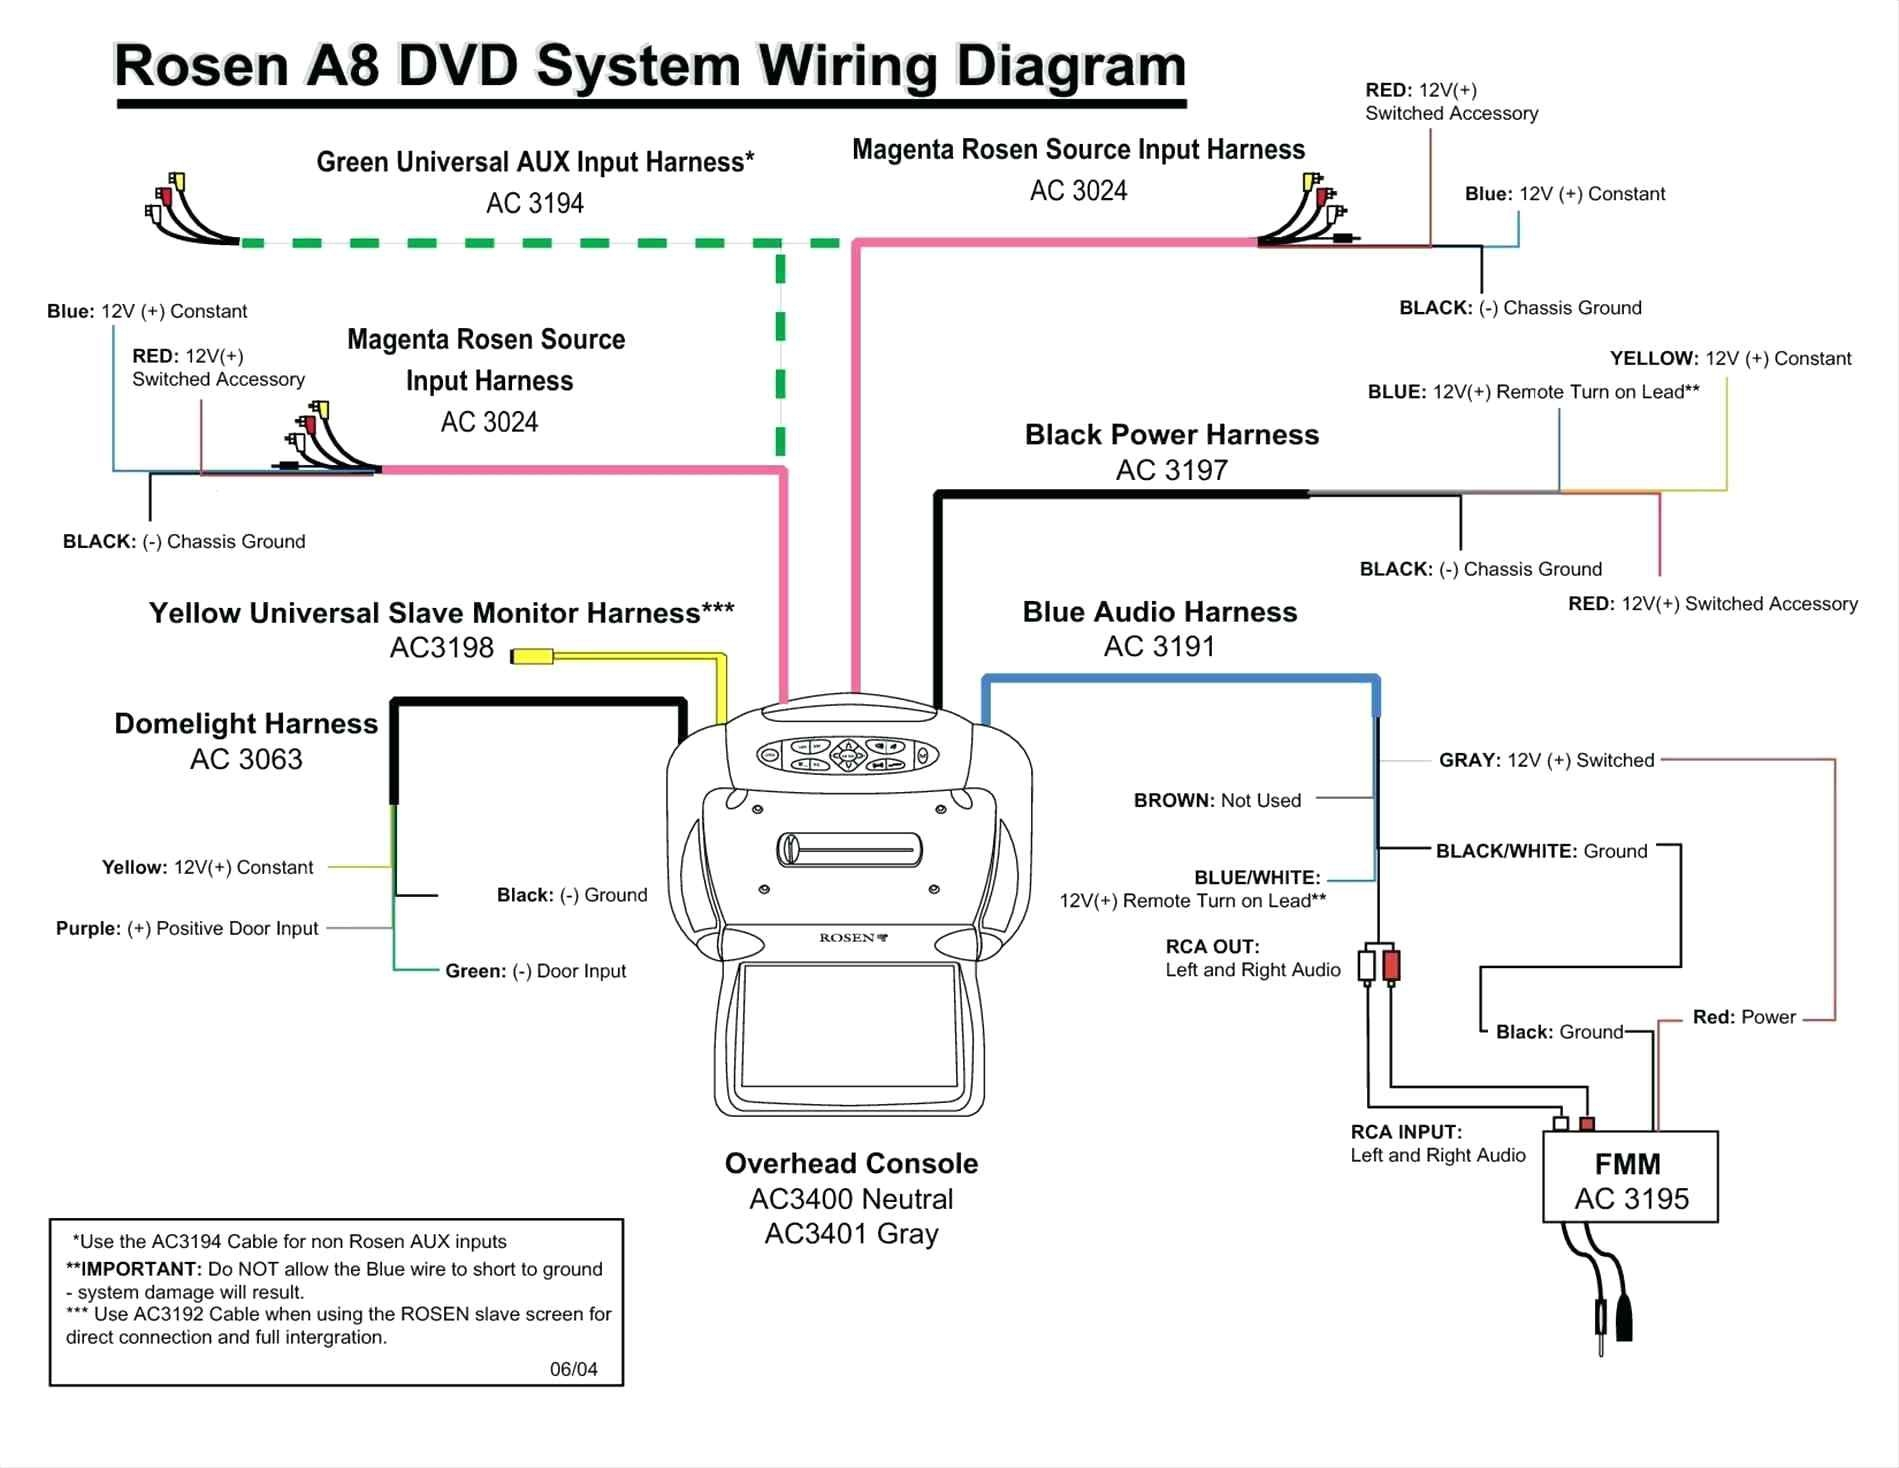 buck boost transformer wiring diagram Collection-square d buck boost transformer wiring diagram Collection Buck Boost Transformer Wiring Diagram Lovely Square 11-g